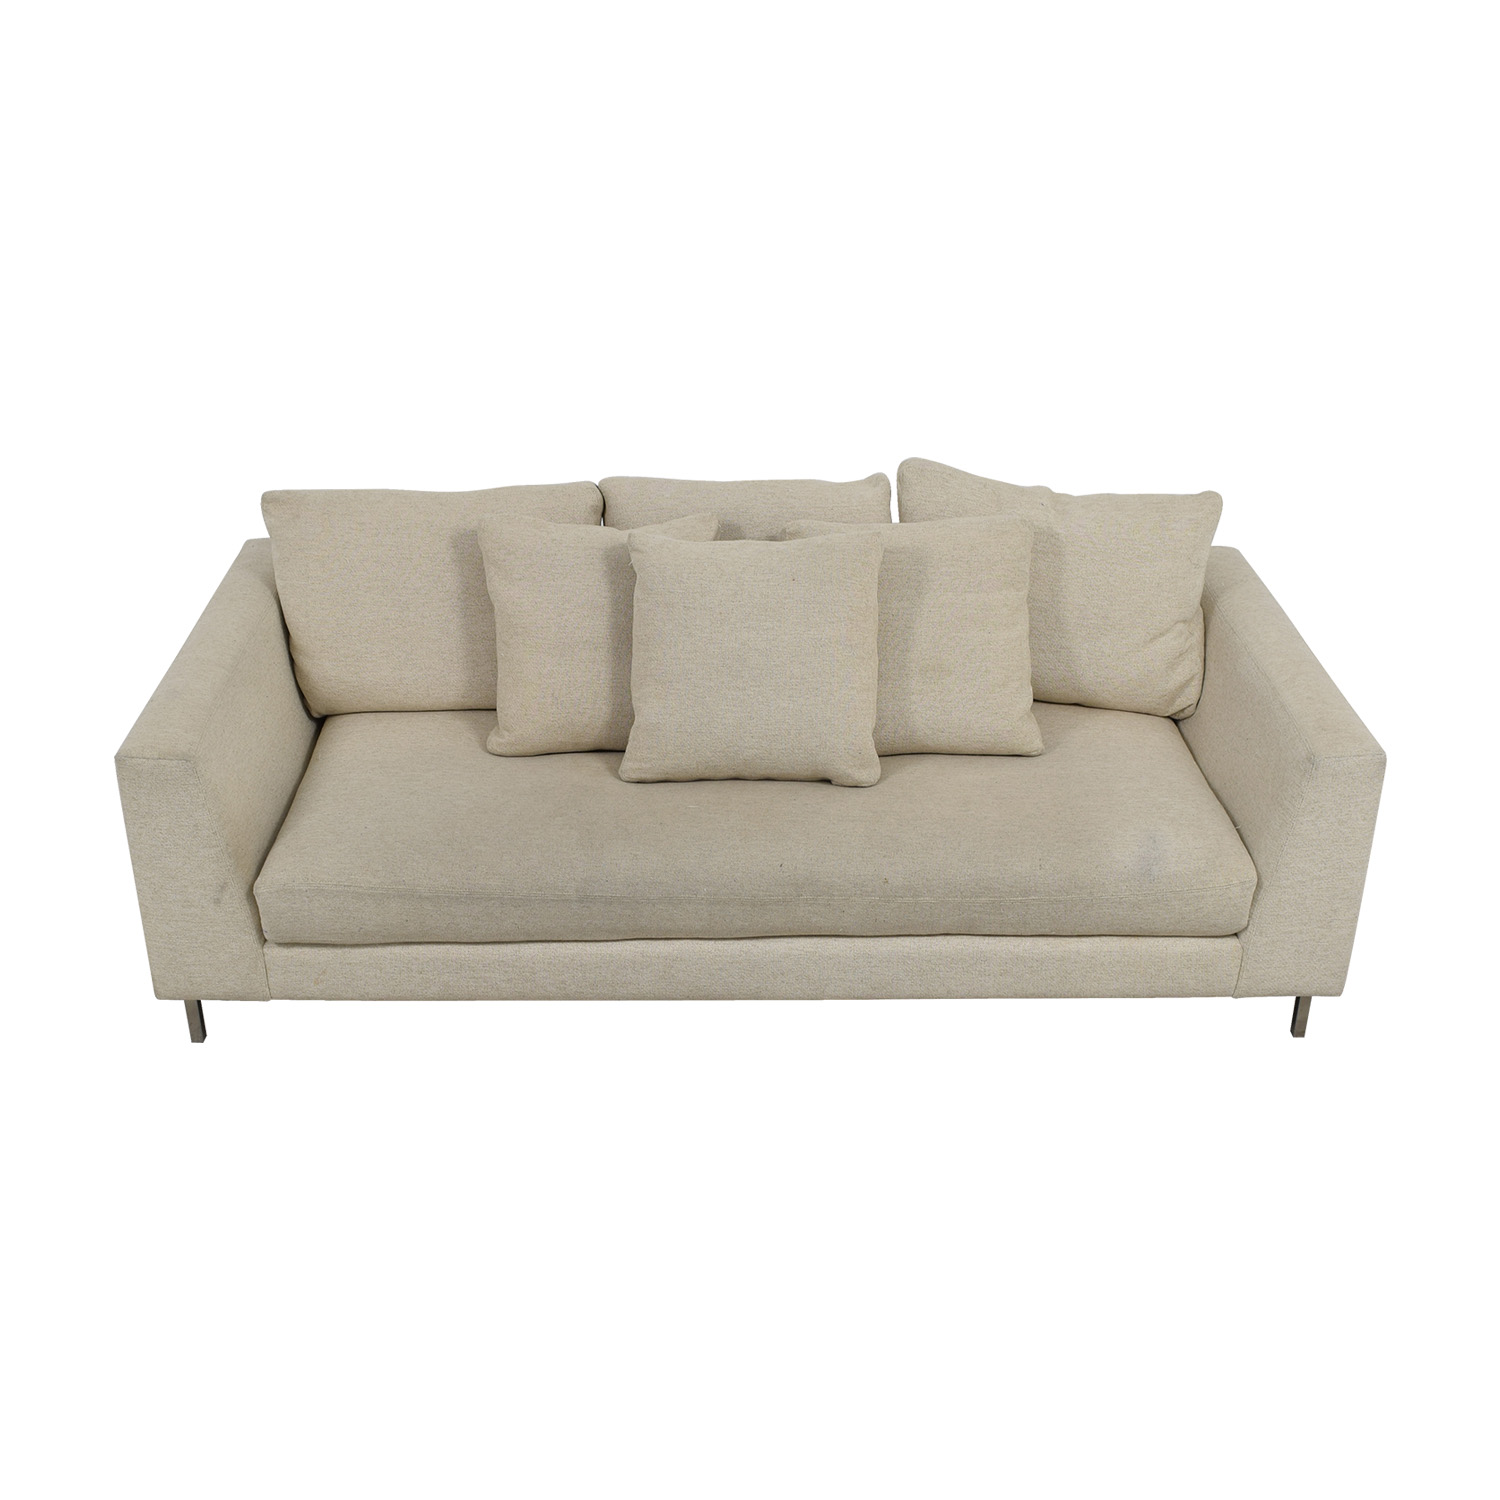 Room & Board Hayes Beige Single Cushion Sofa / Classic Sofas